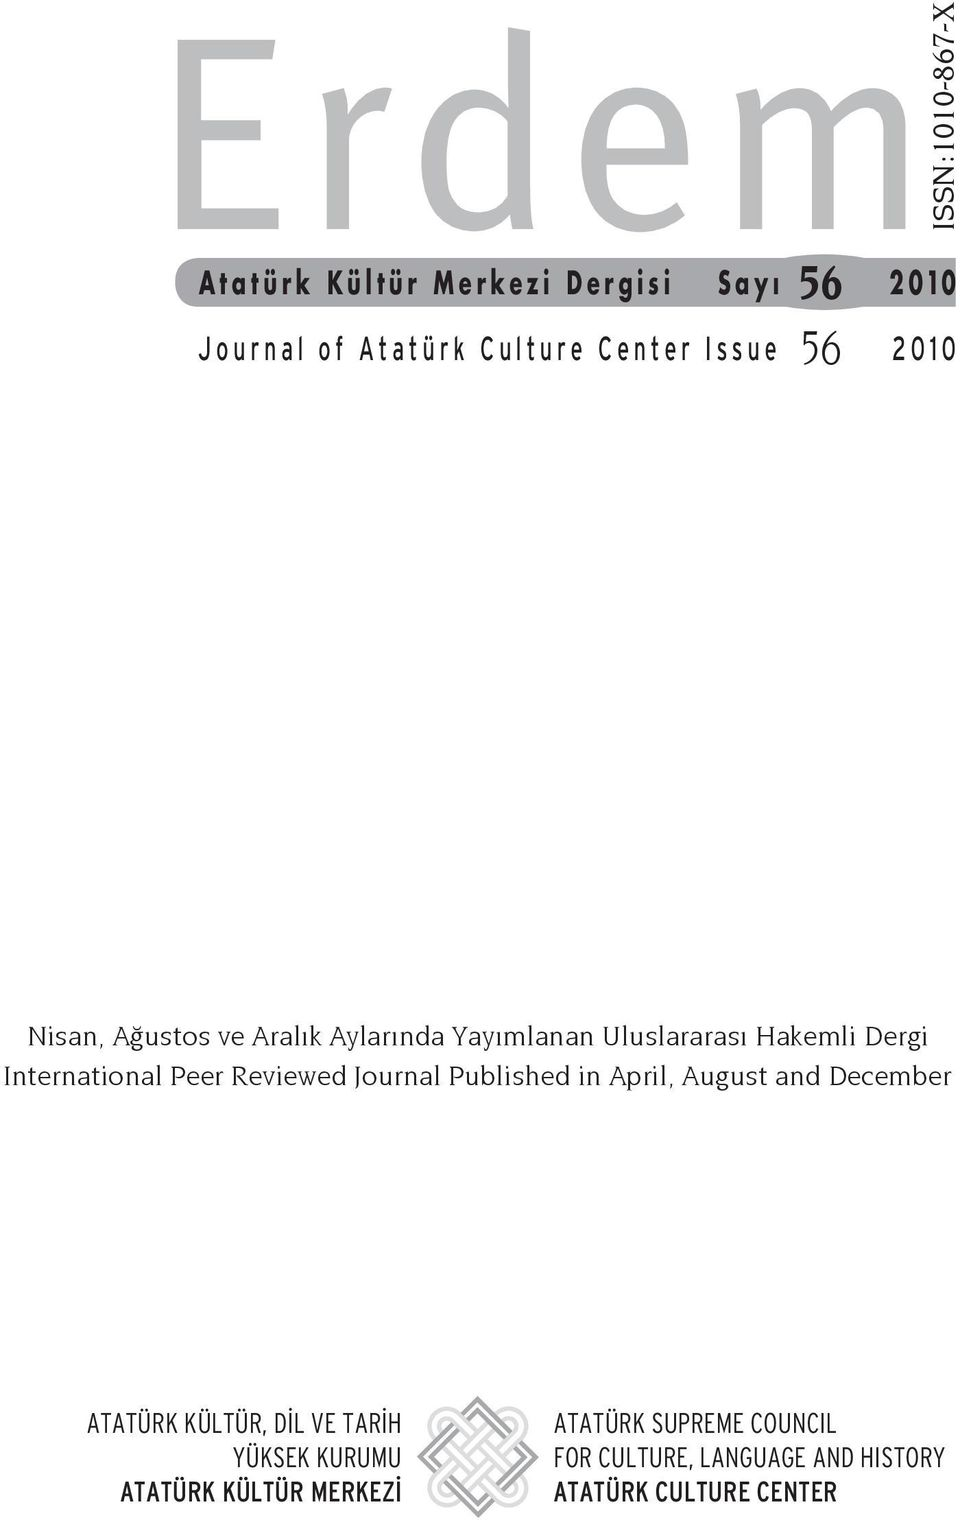 Hakemli Dergi International Peer Reviewed Journal Published in April, August and December ATATÜRK KÜLTÜR, DİL VE